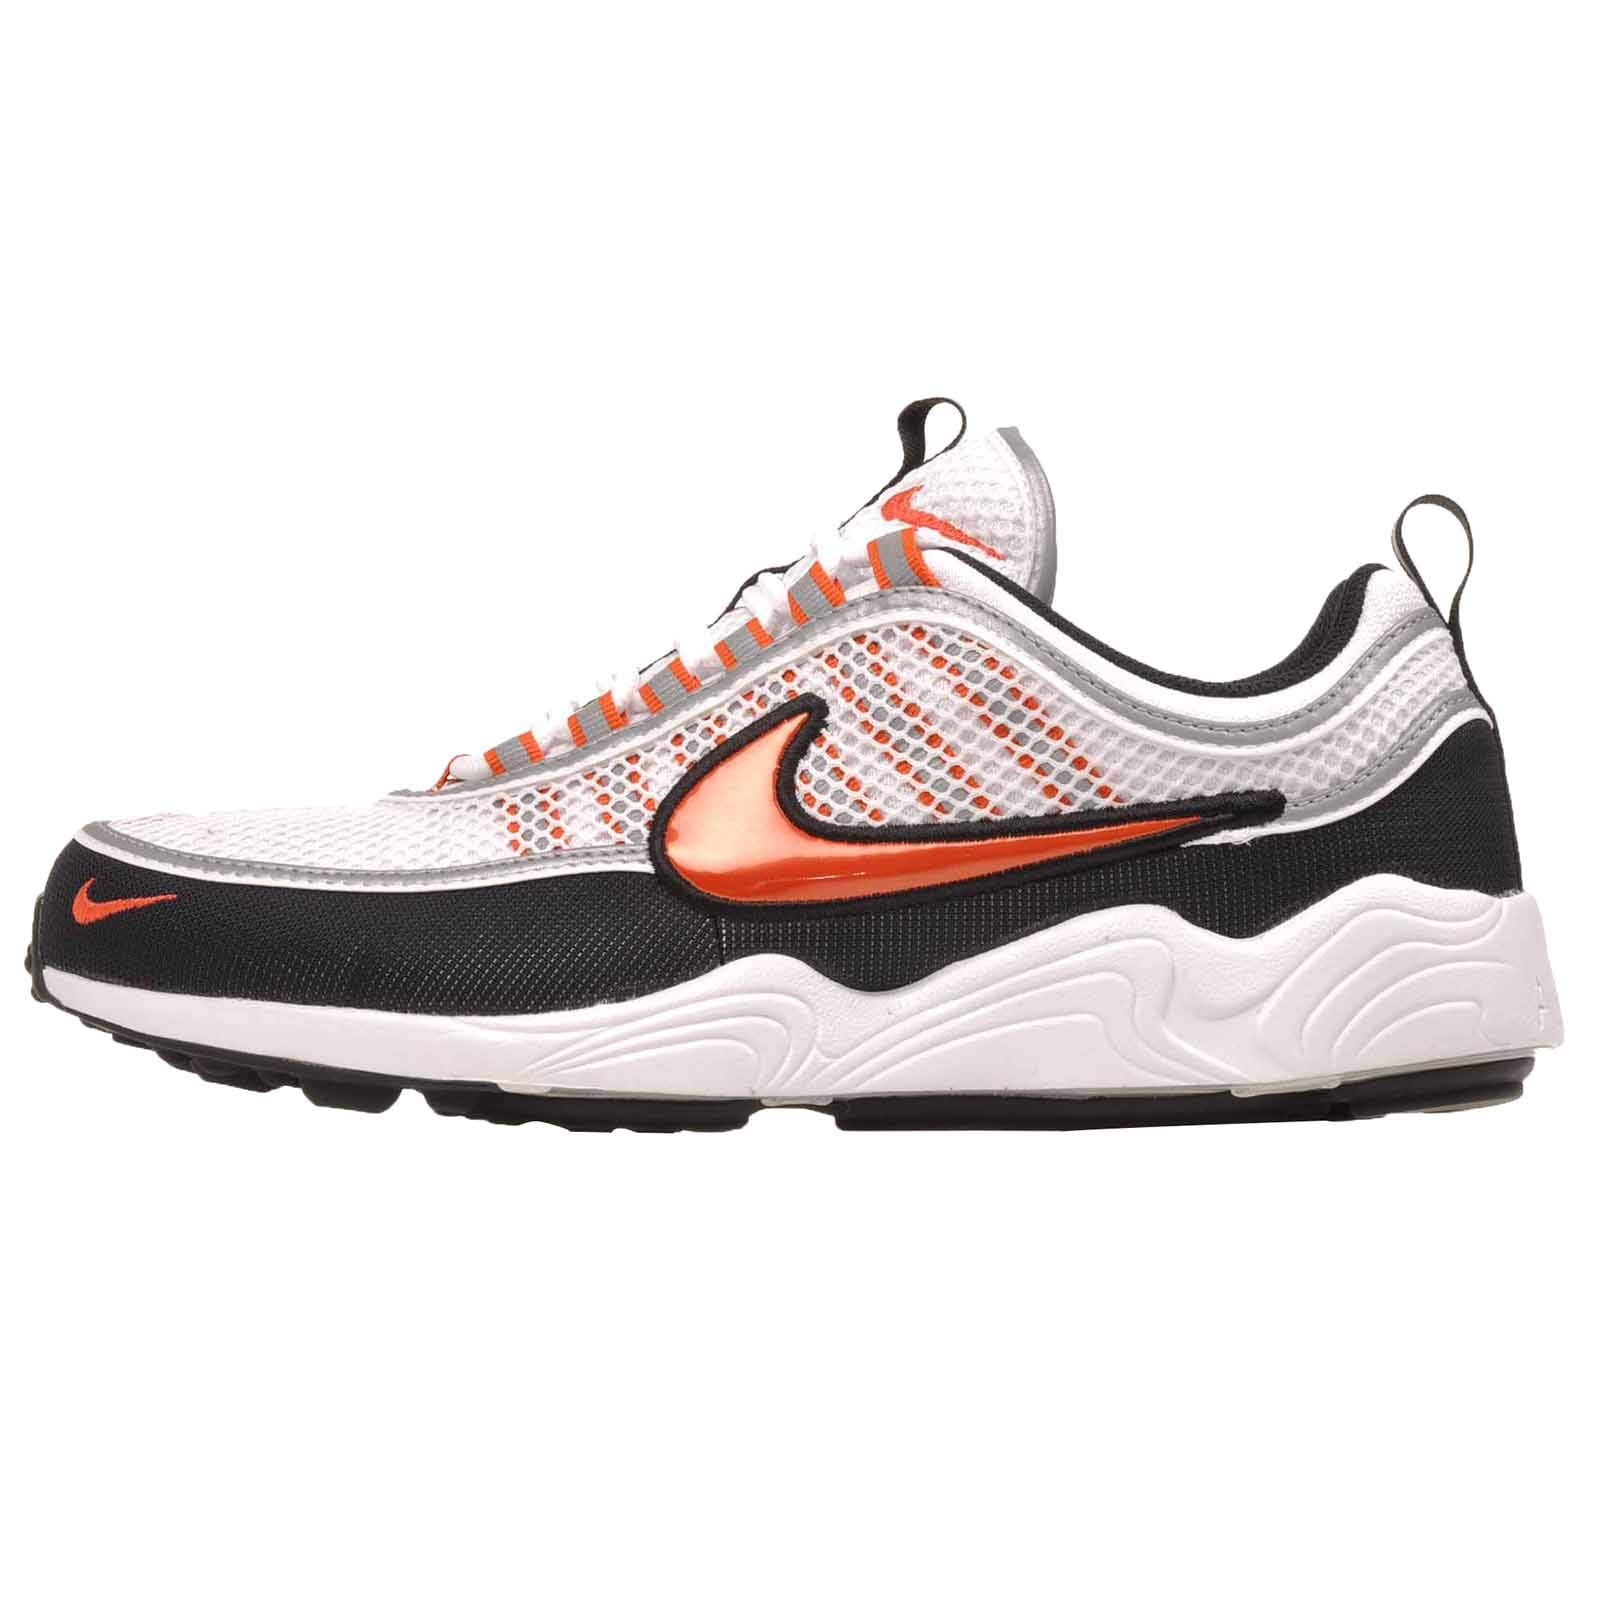 f78af53d2f568 Nike Air Zoom Spiridon '16 Men's Running Shoes 926955 106 (9.5 D(M) US)  White-Black-Orange